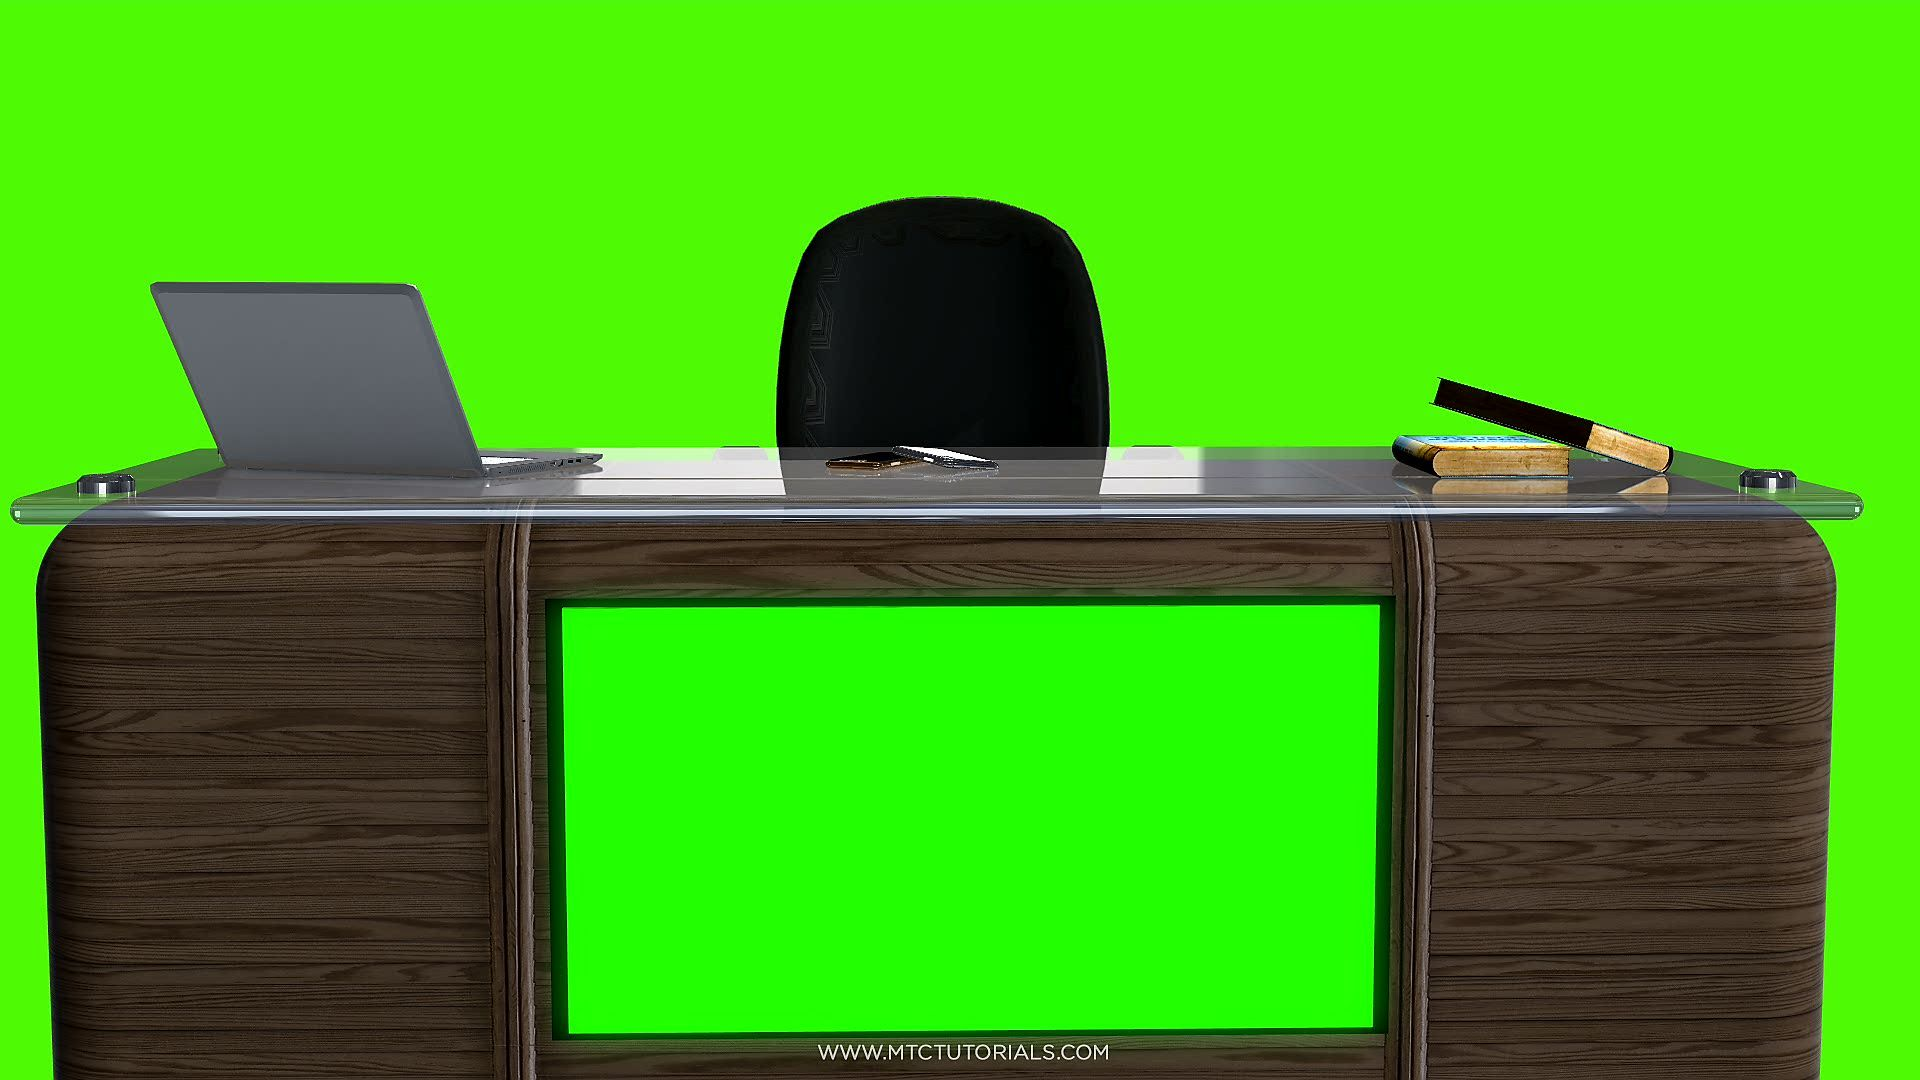 Studio Desk Free Backgrounds Table And Chair Mtc Tutorials In 2020 Virtual Studio Chroma Key Backgrounds Green Screen Backgrounds